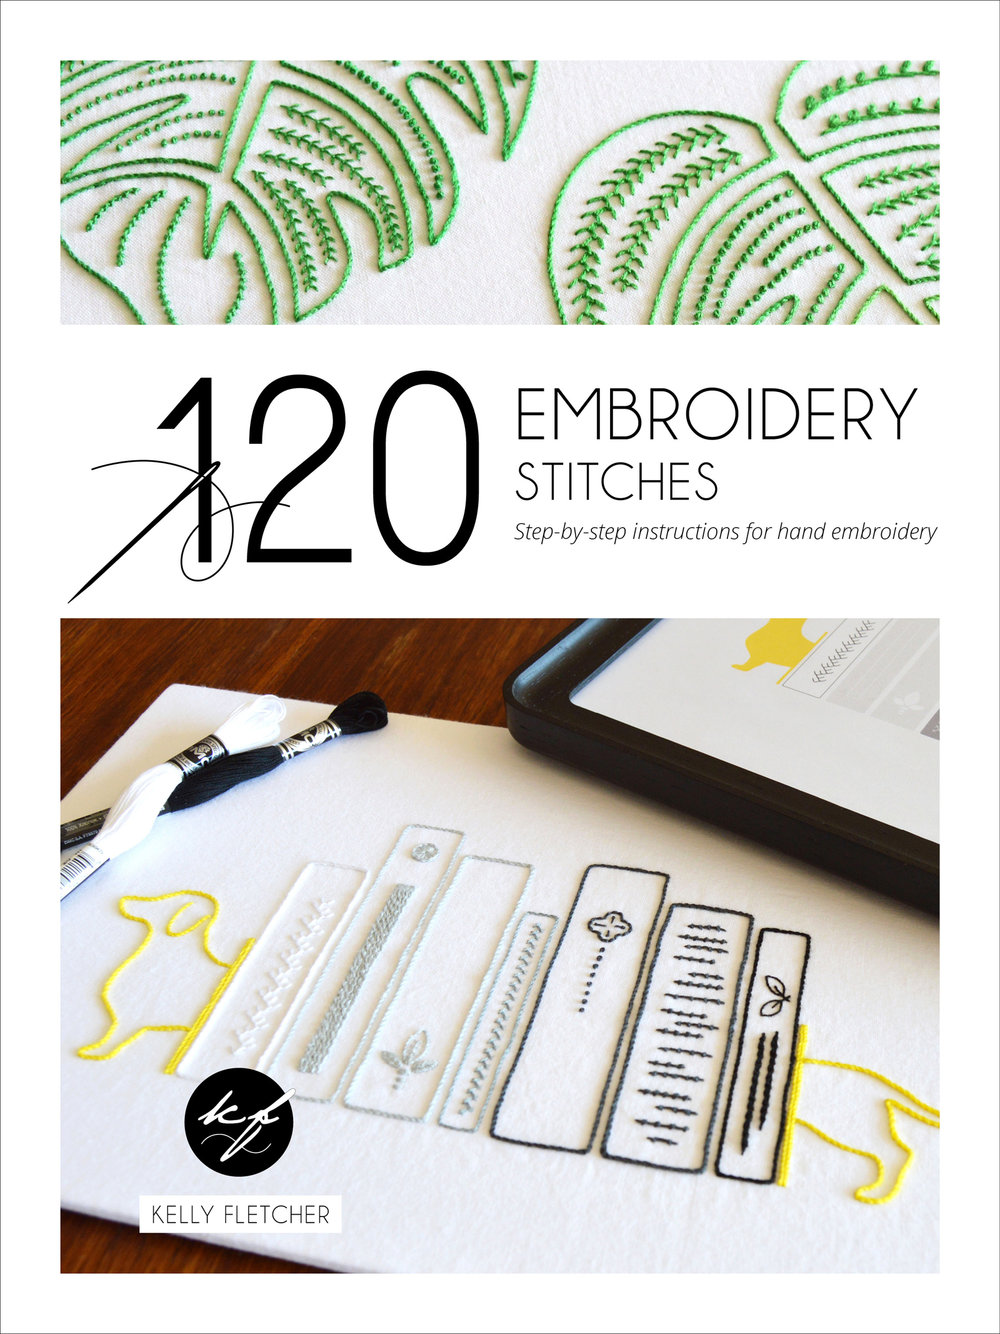 120EmbroideryStitches18B_KellyFletcher.jpg